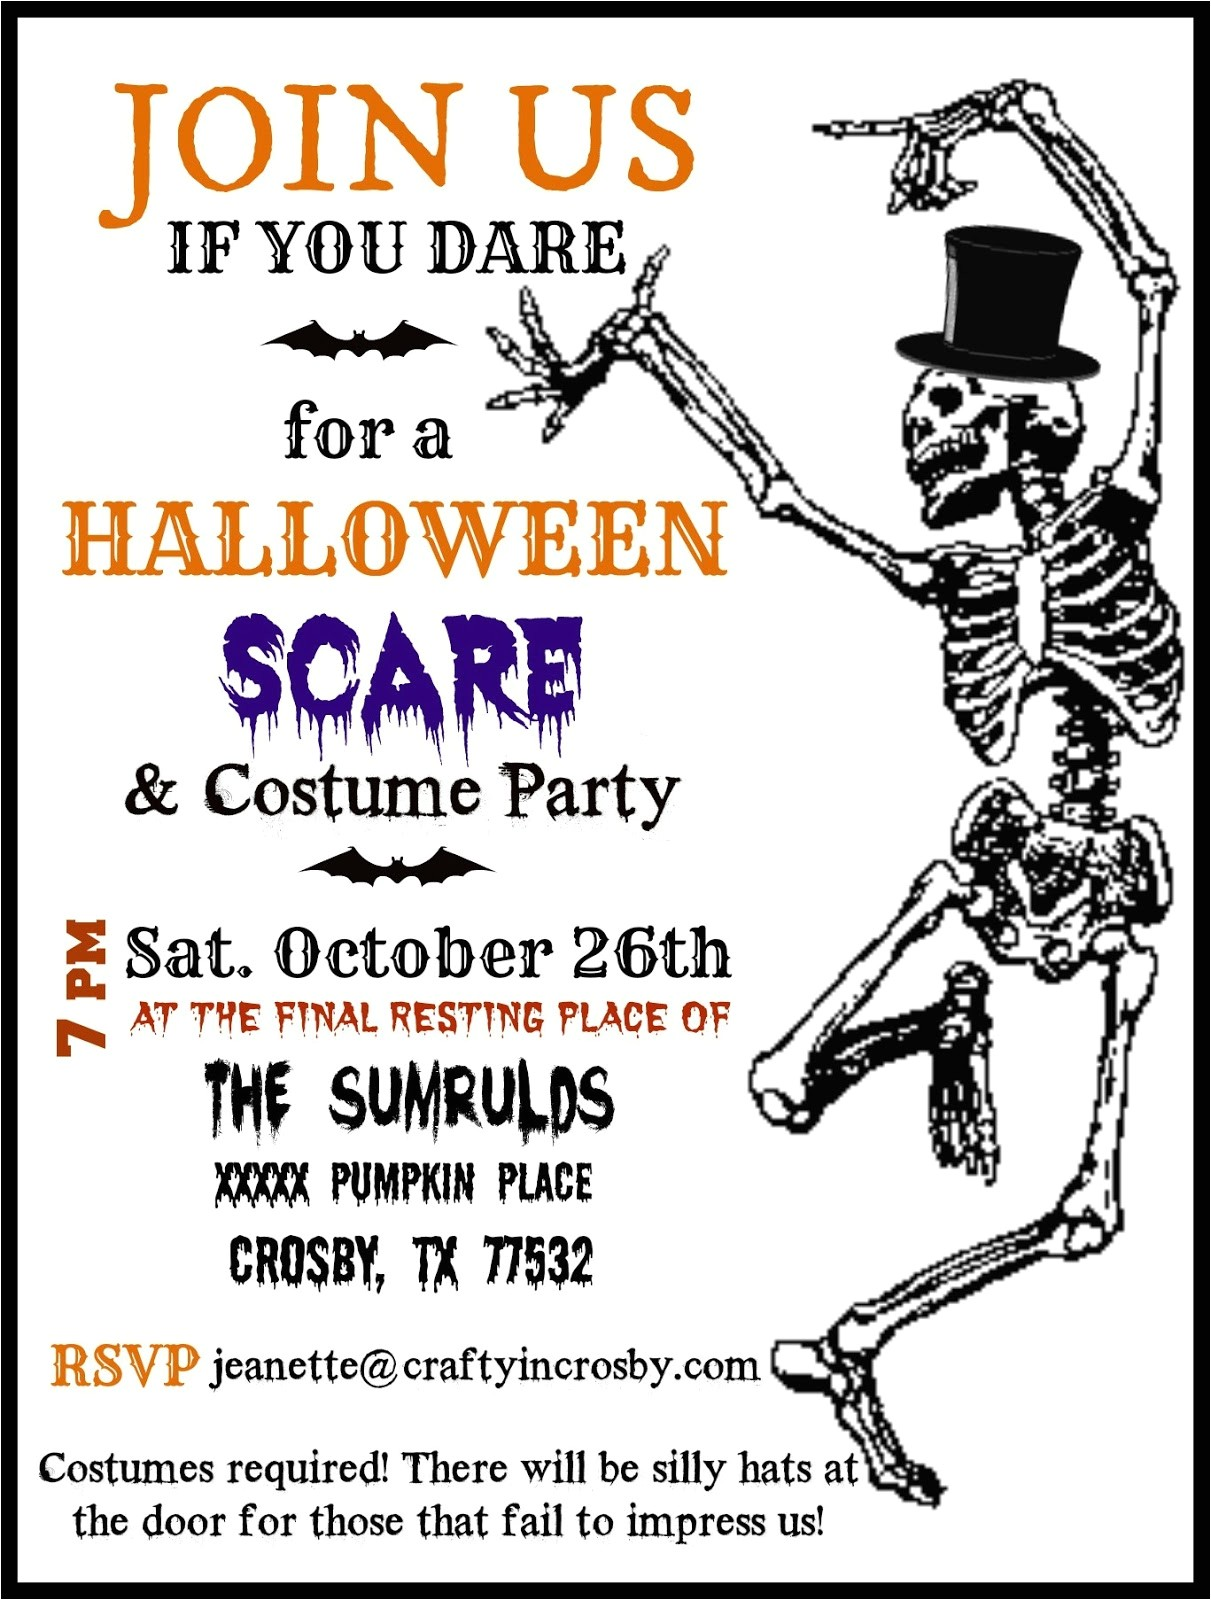 Halloween Party Invite Template Crafty In Crosby Halloween Party Invitations with Template